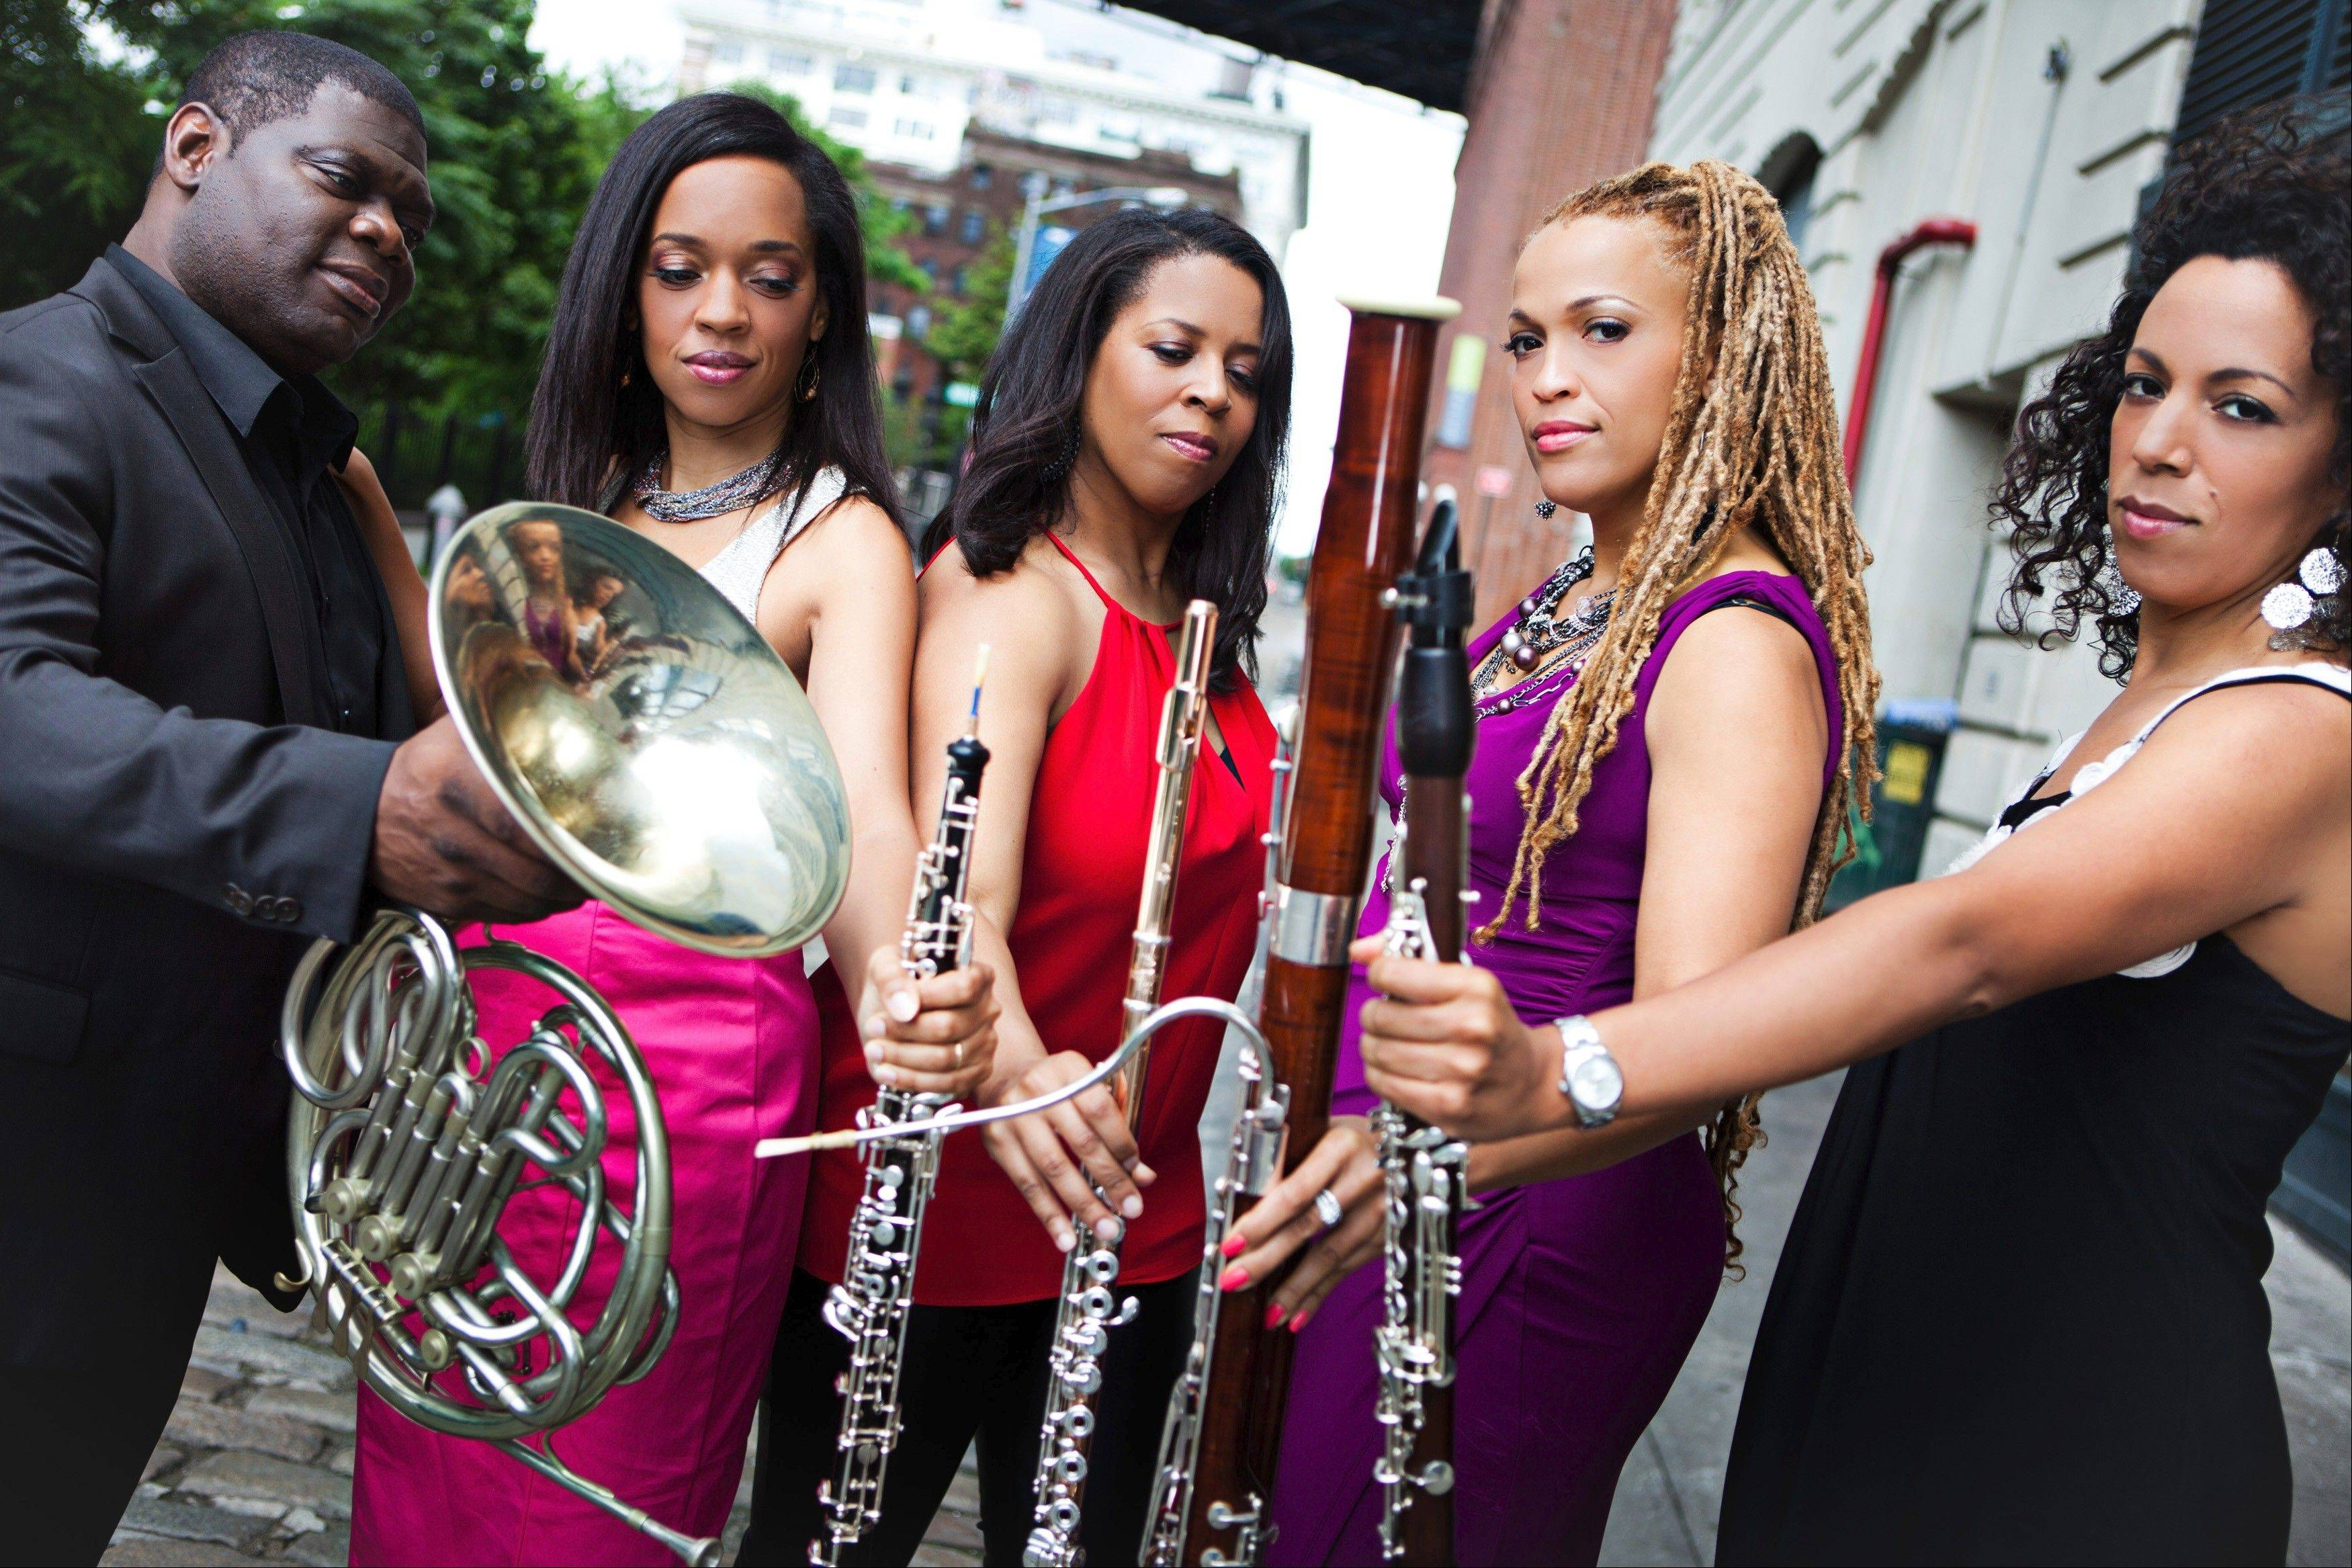 Imani Winds plays a Valentine's Day concert at the Lumber Center for the Performing Arts on Thursday, Feb. 14.